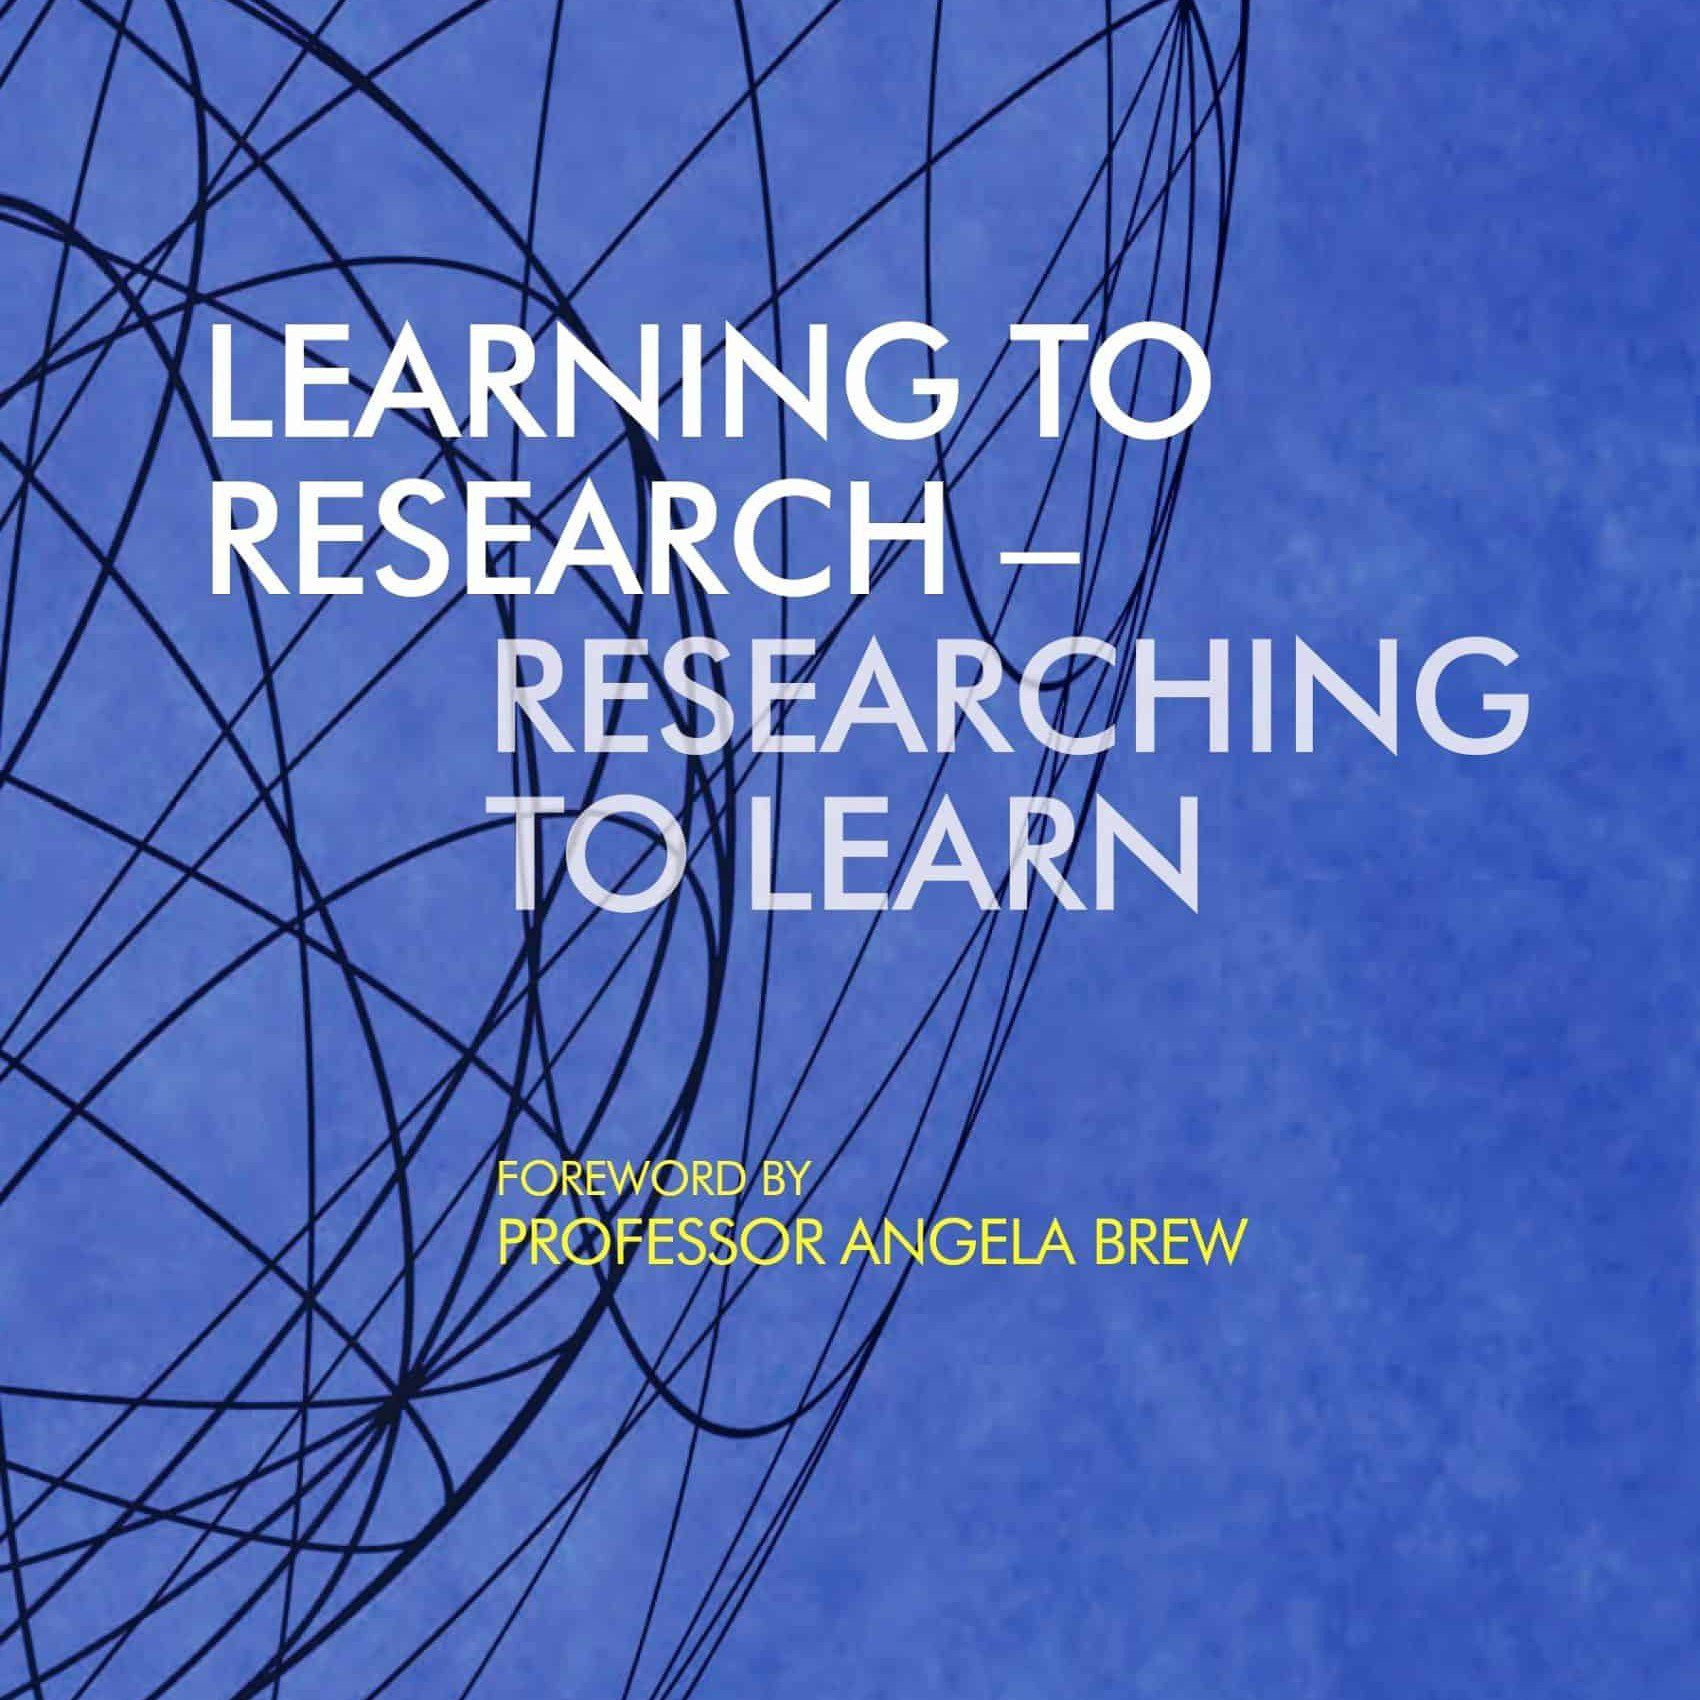 Learning to Research Researching to Learn (2015) - Cally Guerin - Paul Bartholomew - Claus Nygaard - Angela Brew - Libri Publishing Ltd - Institute for Learning in Higher Education